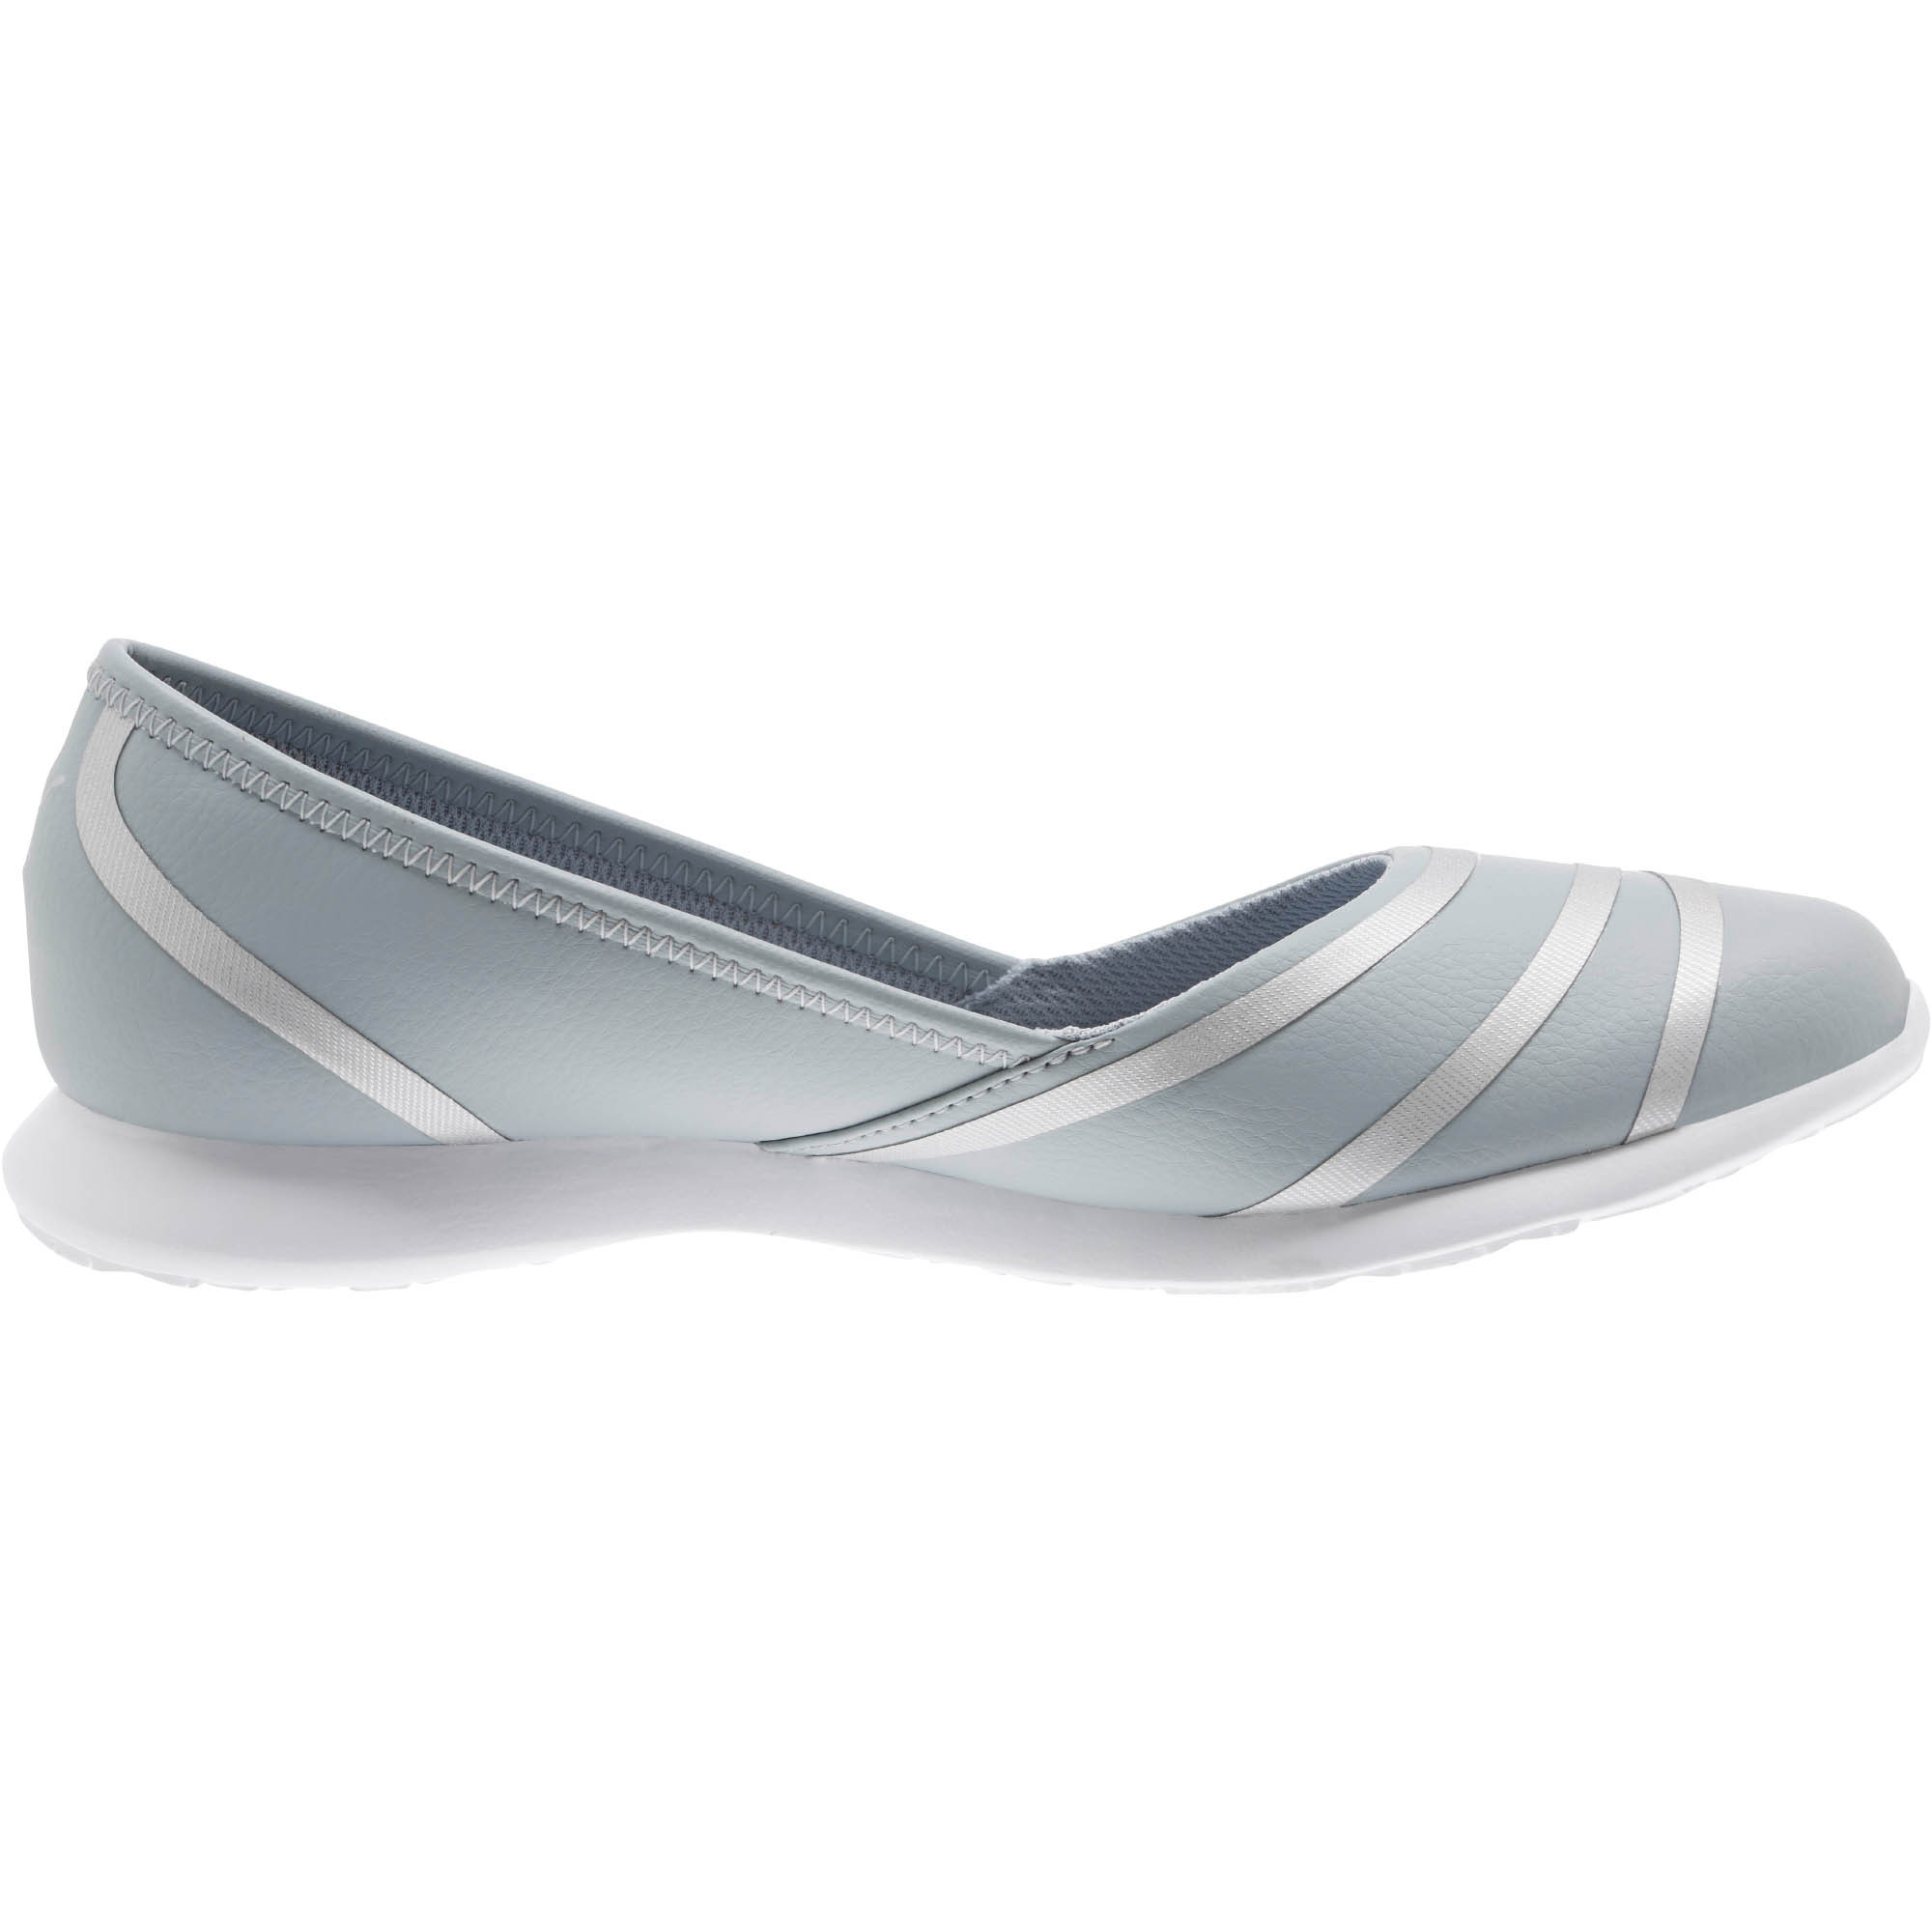 PUMA-PUMA-Vega-Ballet-Women-039-s-SL-Shoes-Women-Ballerina-Basics thumbnail 8